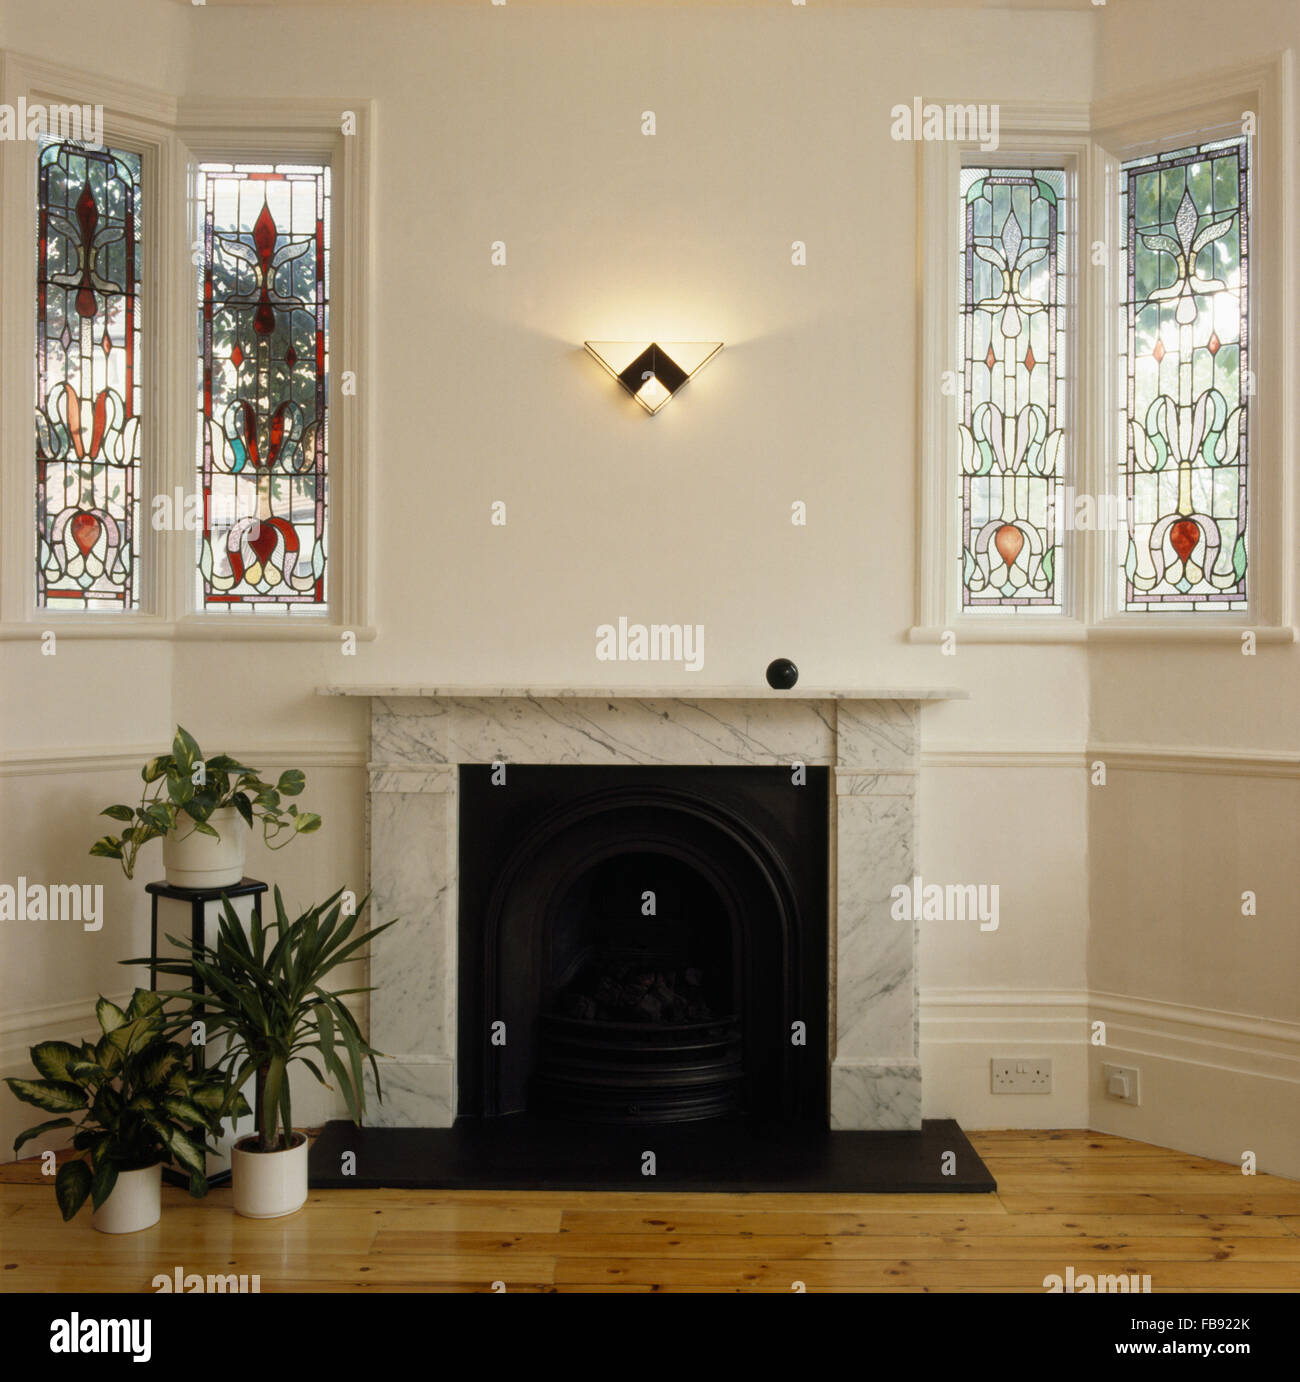 Stained glass windows either side of marble fireplace - Stock Image